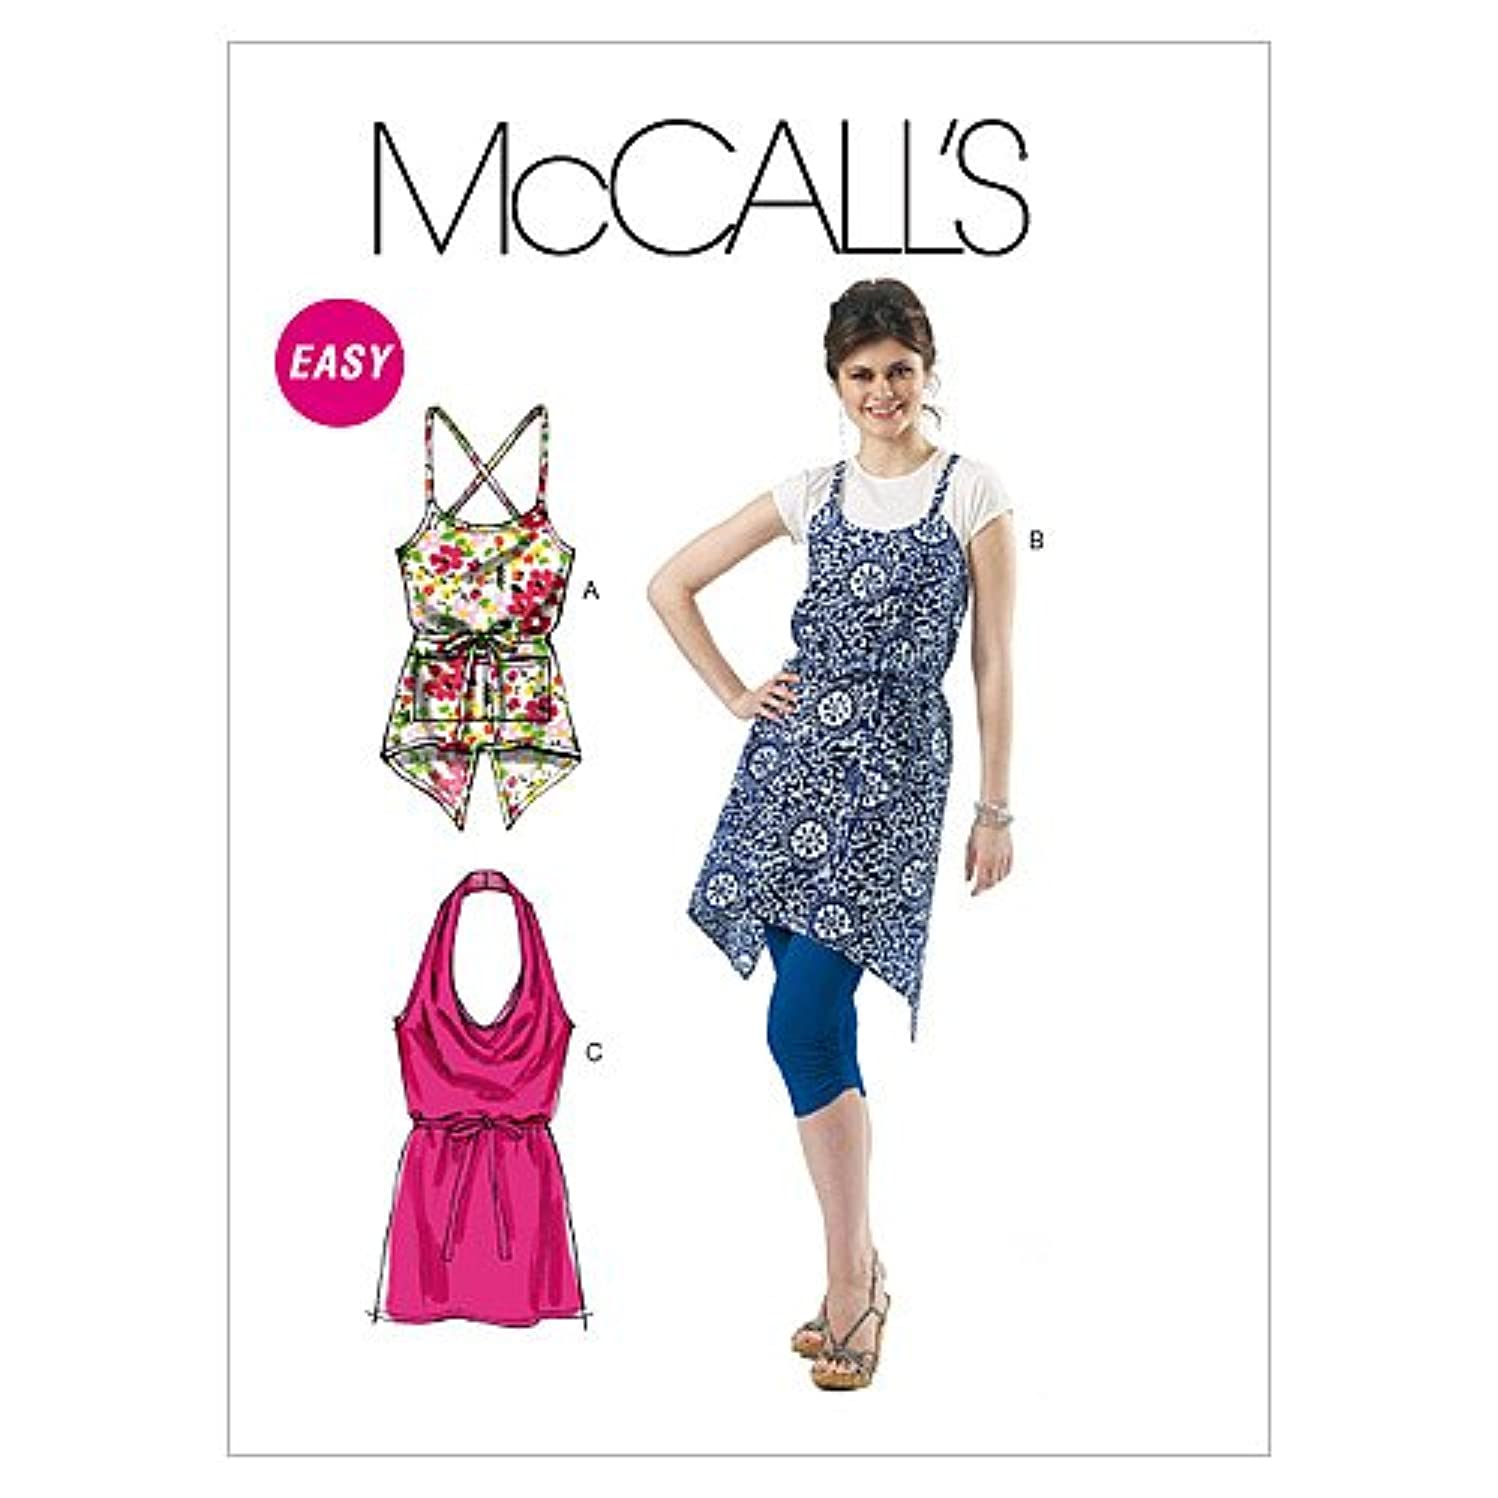 McCall's Patterns M6358 Misses' Tops, Size Y (XSM-SML-MED)